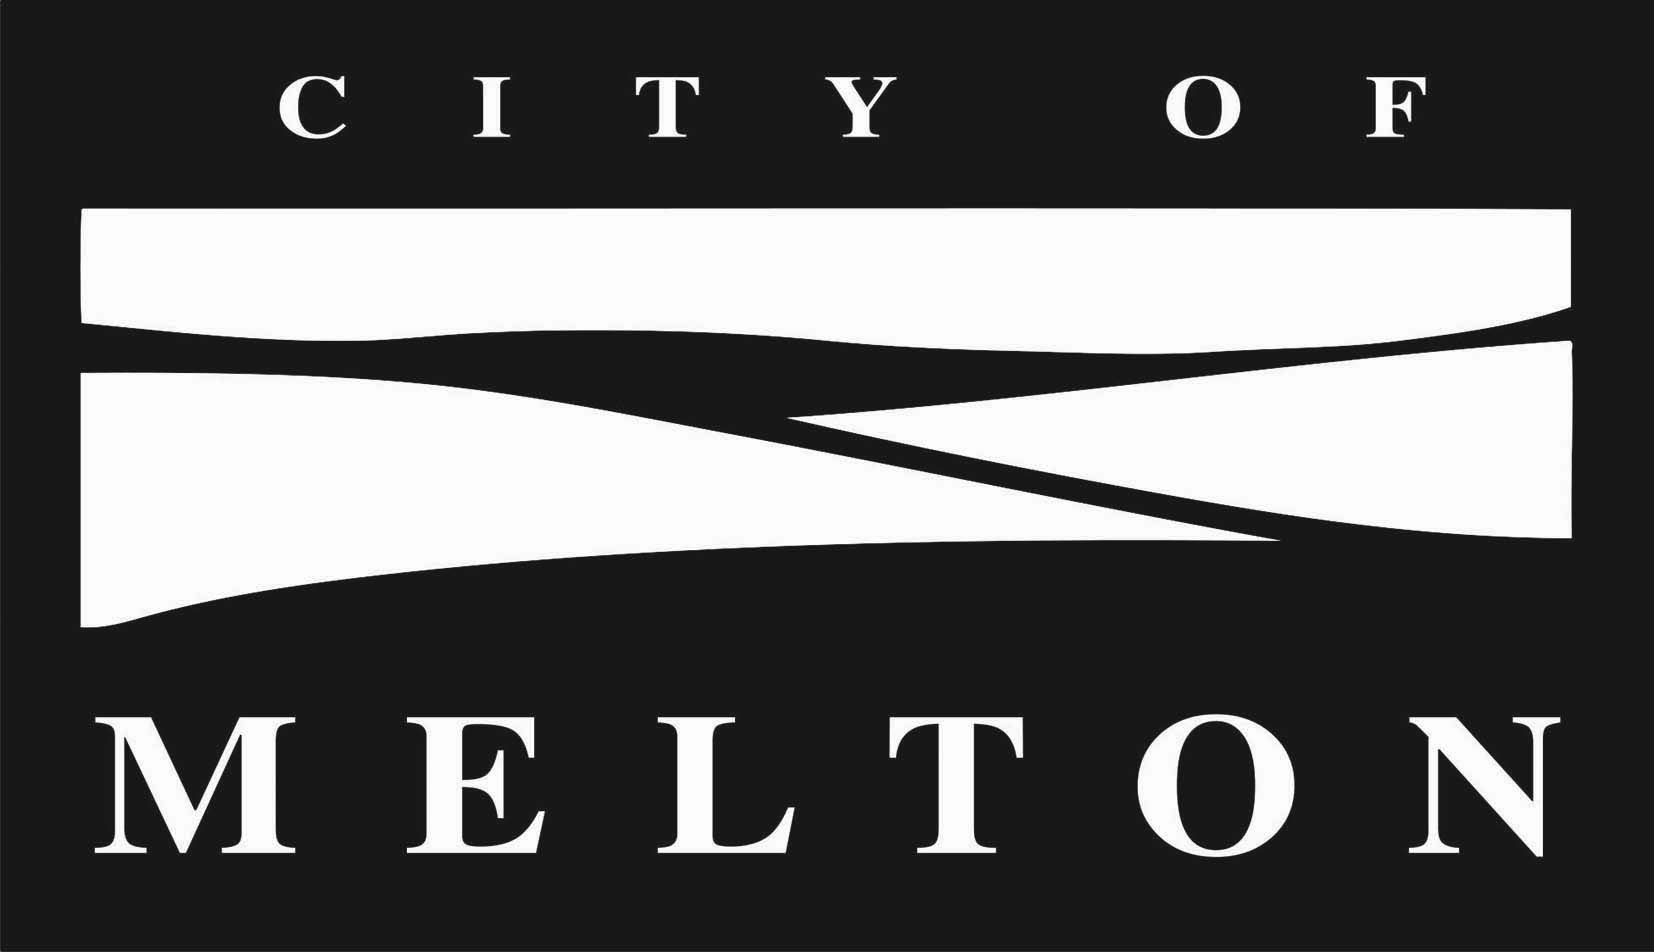 City of Melton logo